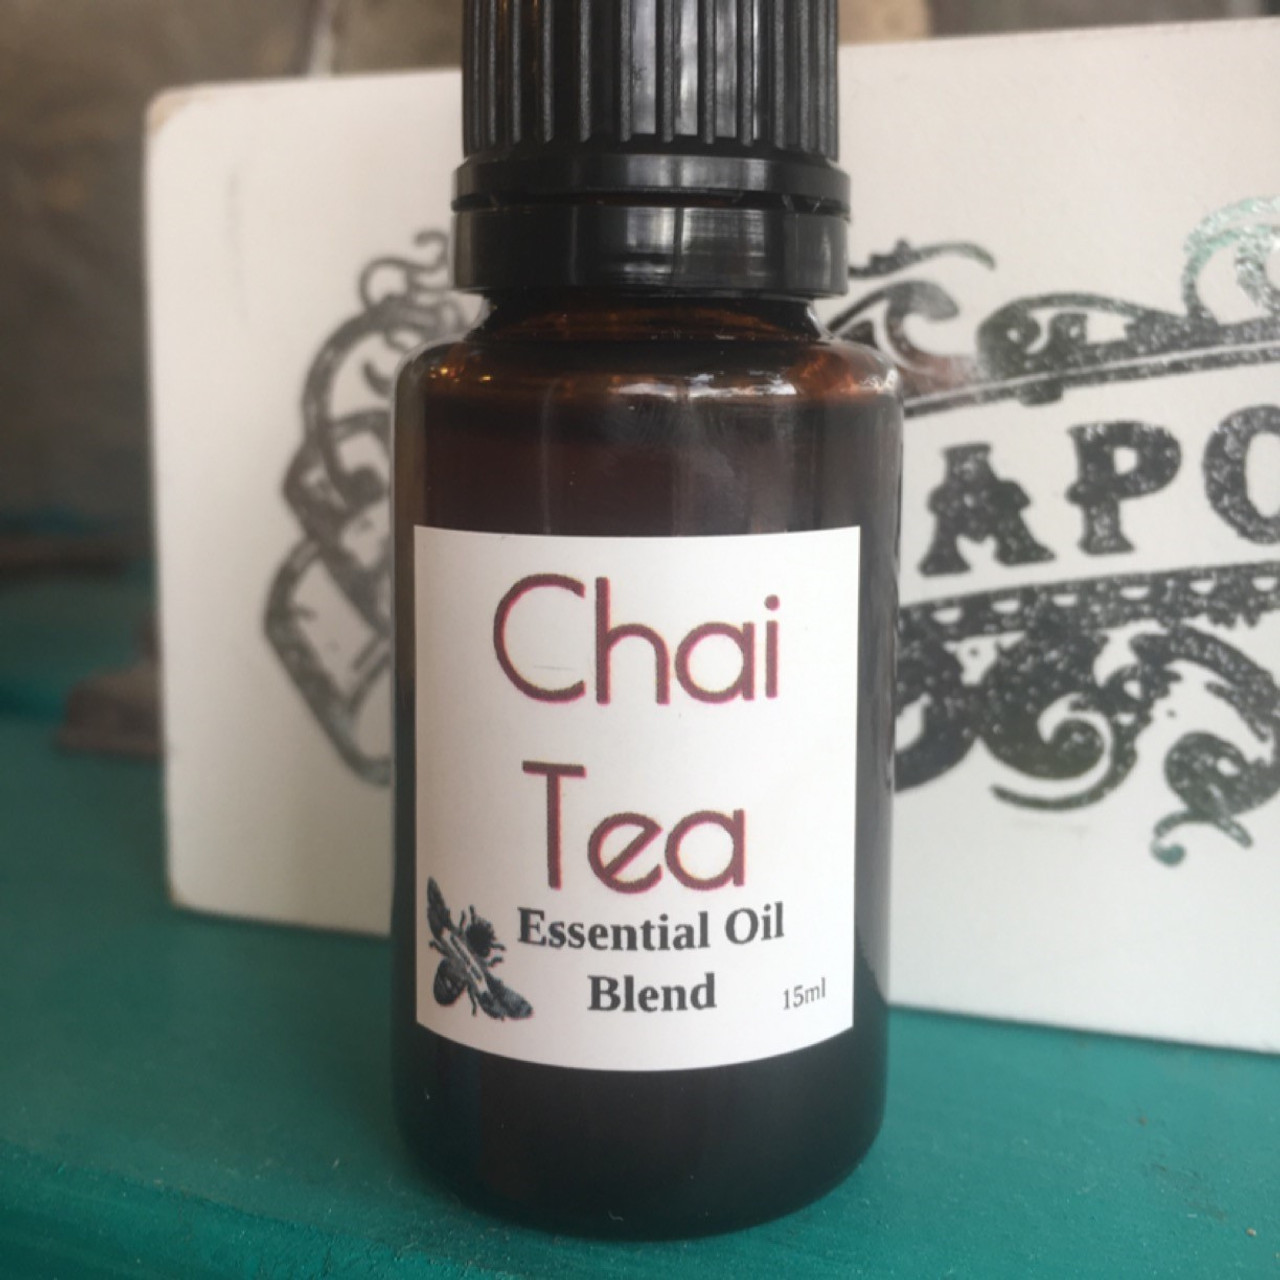 Chai Tea Essential Oil Blend. Make counter spray, Car Spray, or diffuse